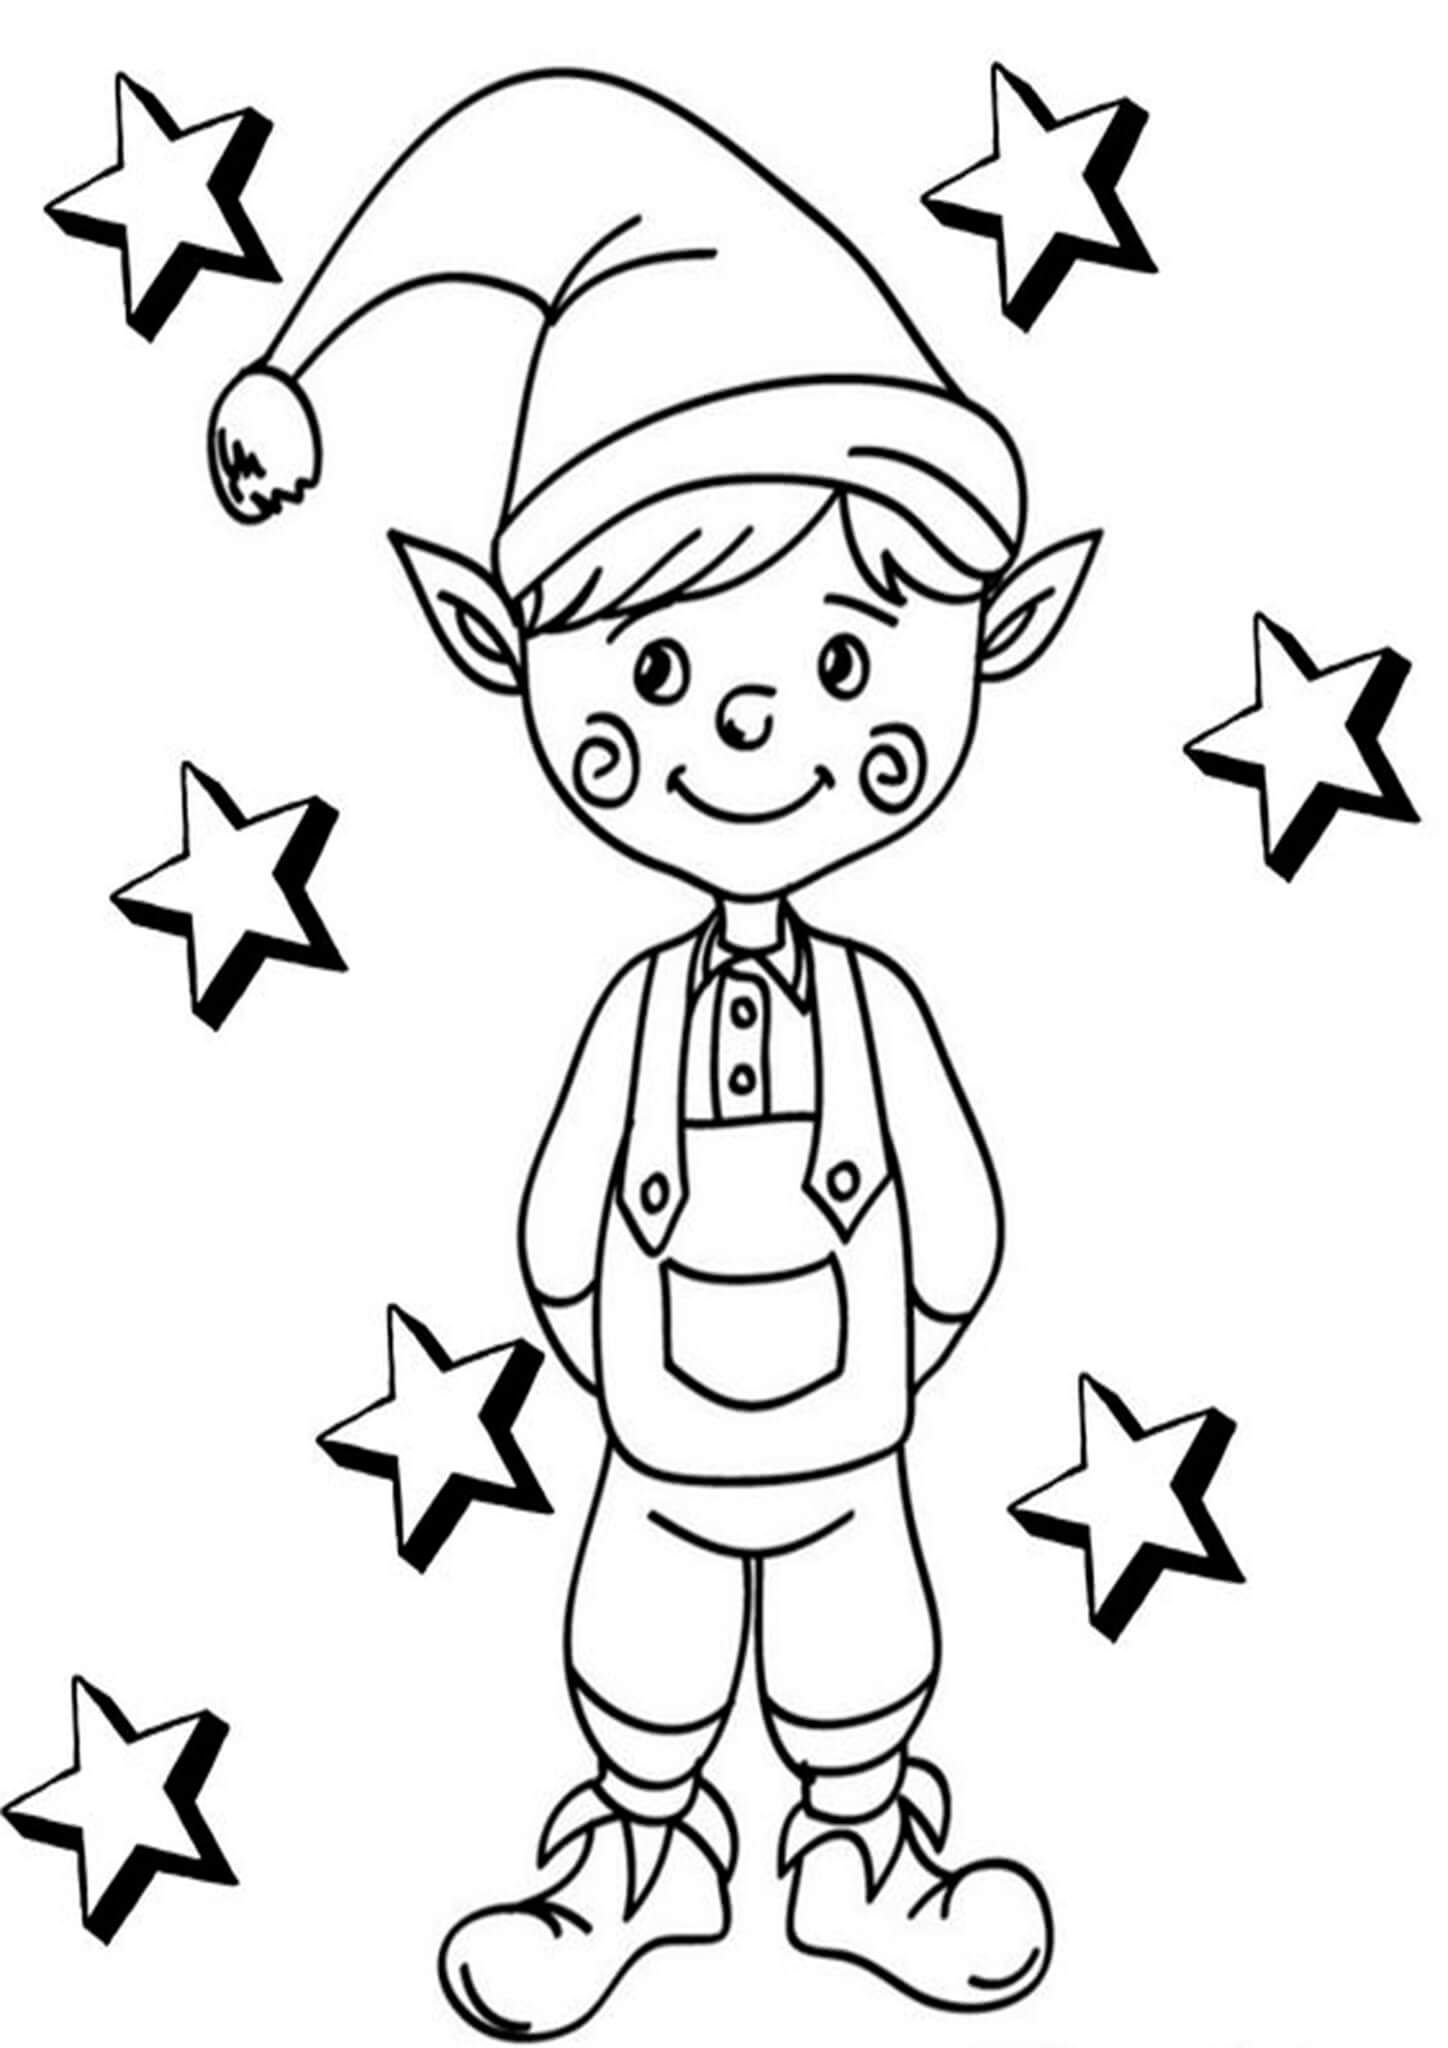 Free Easy To Print Elf Coloring Pages Coloring Pages Christmas Coloring Pages Valentines Day Coloring Page